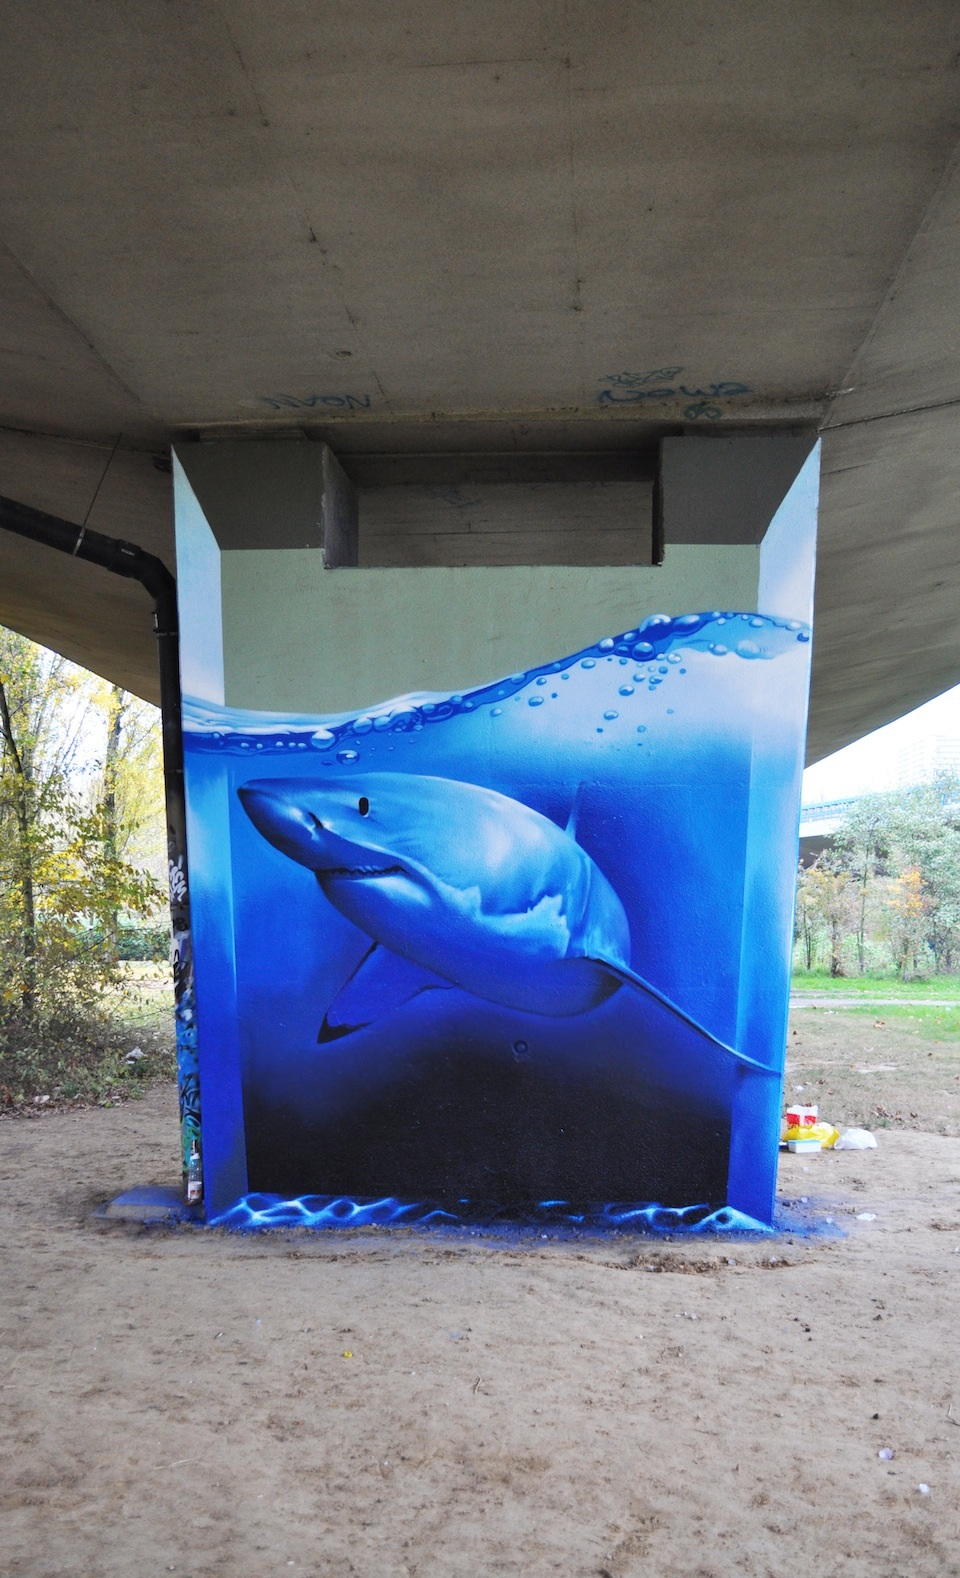 By Smates - In Brussels, Belgium